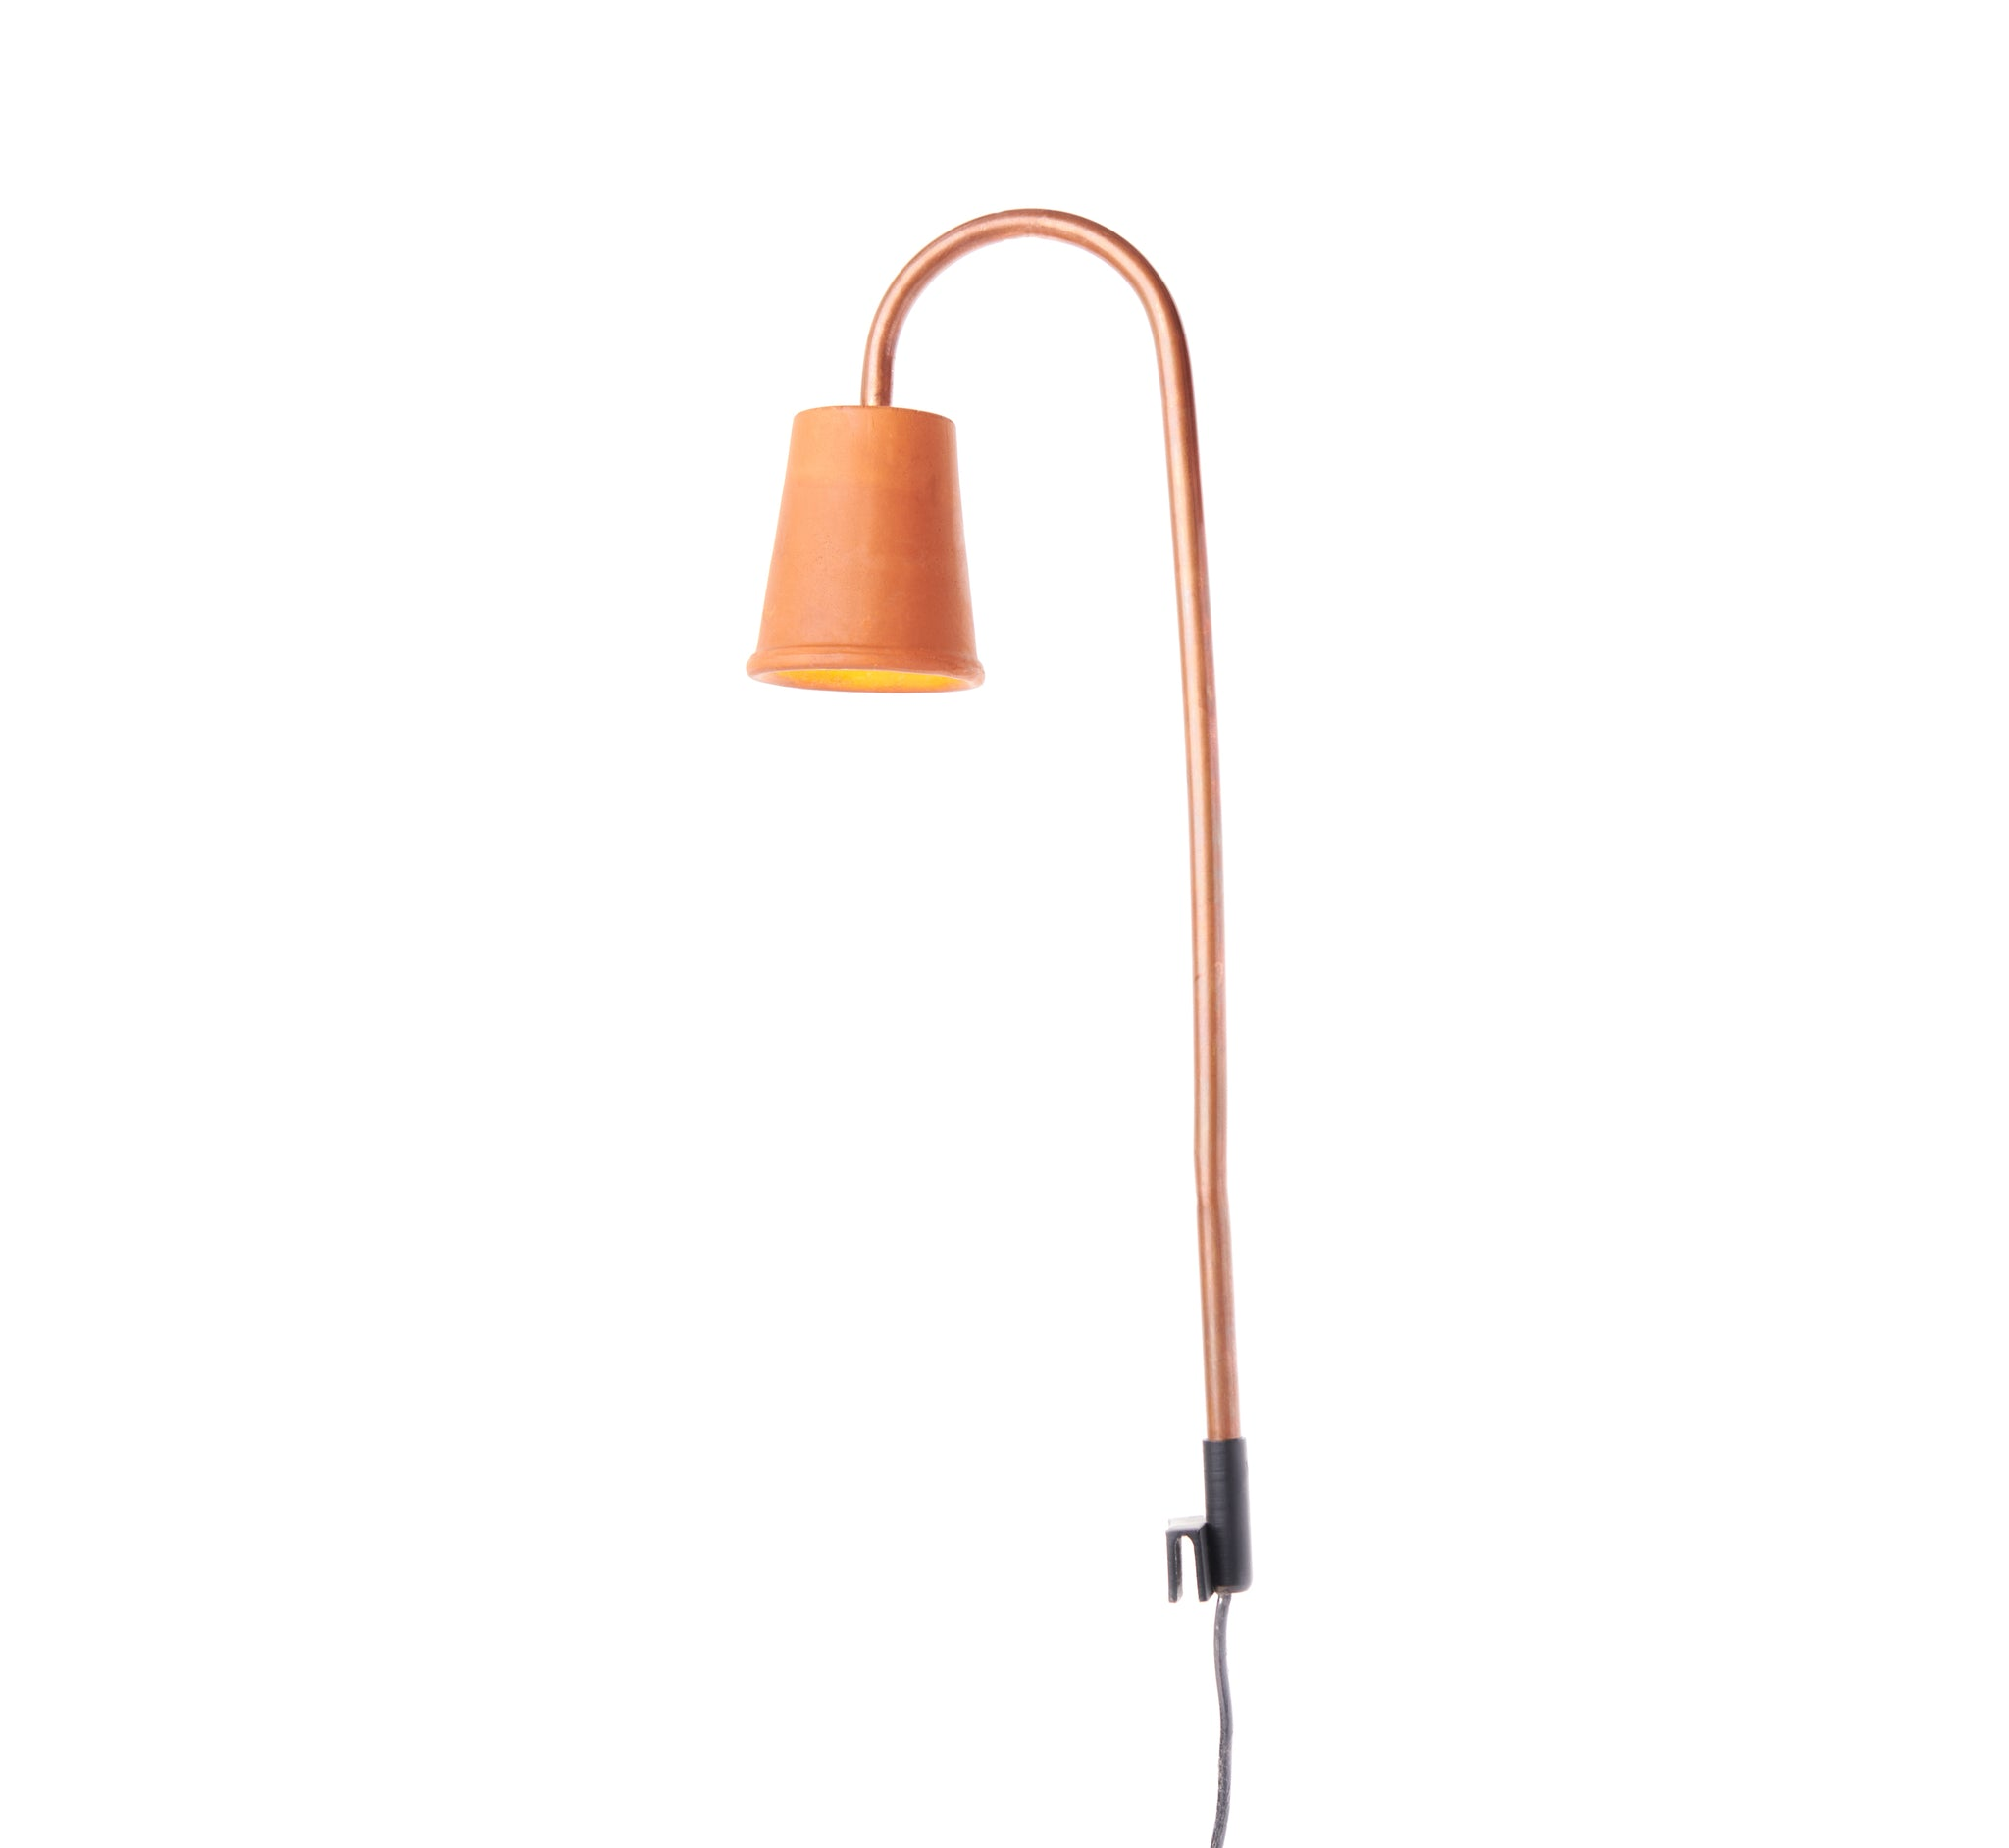 Cotta - My lamp for plants